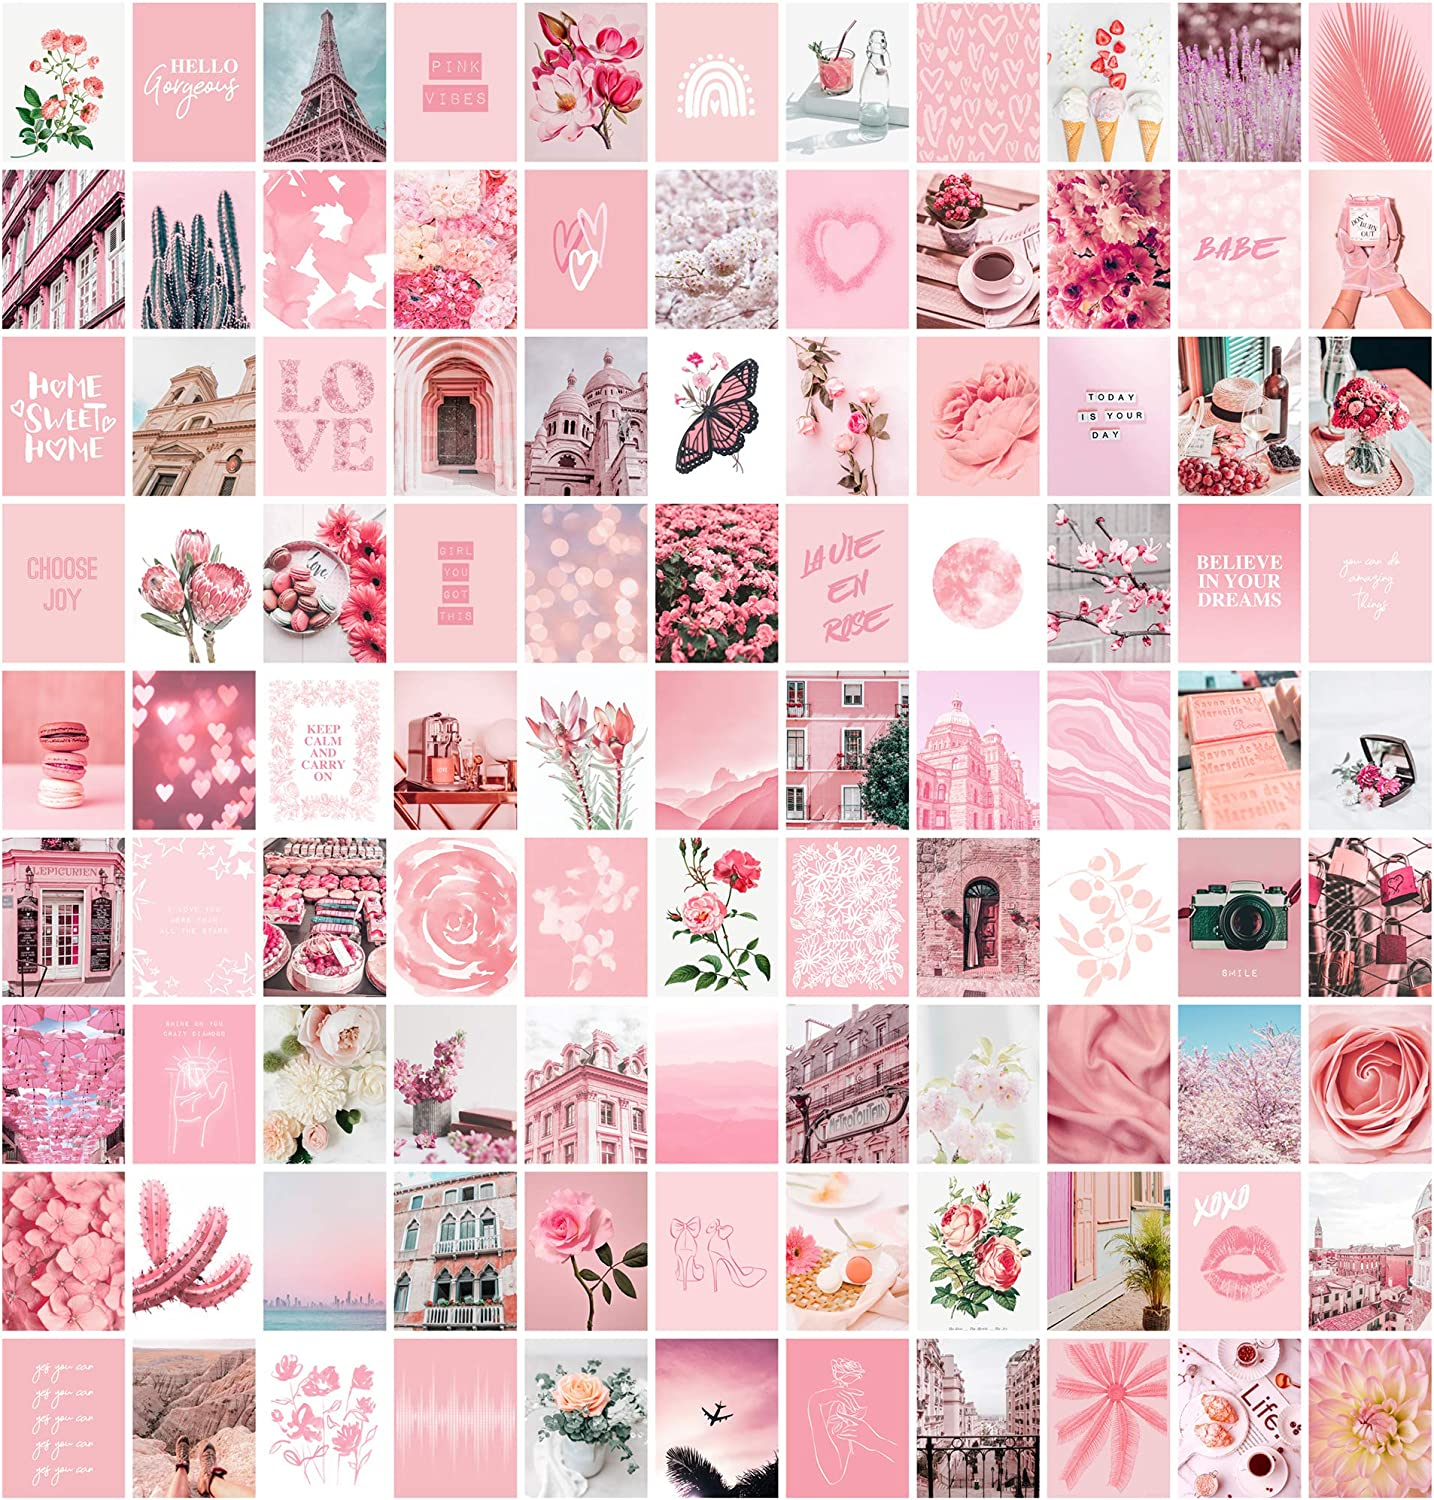 Pink Aesthetic Wall Collage Kit, 100 Set 4x6 inch, Room Decor for Teen Girls, Pretty Blush Pink Wall Art Print, Dorm Photo Collection, Small Posters for Room Aesthetic